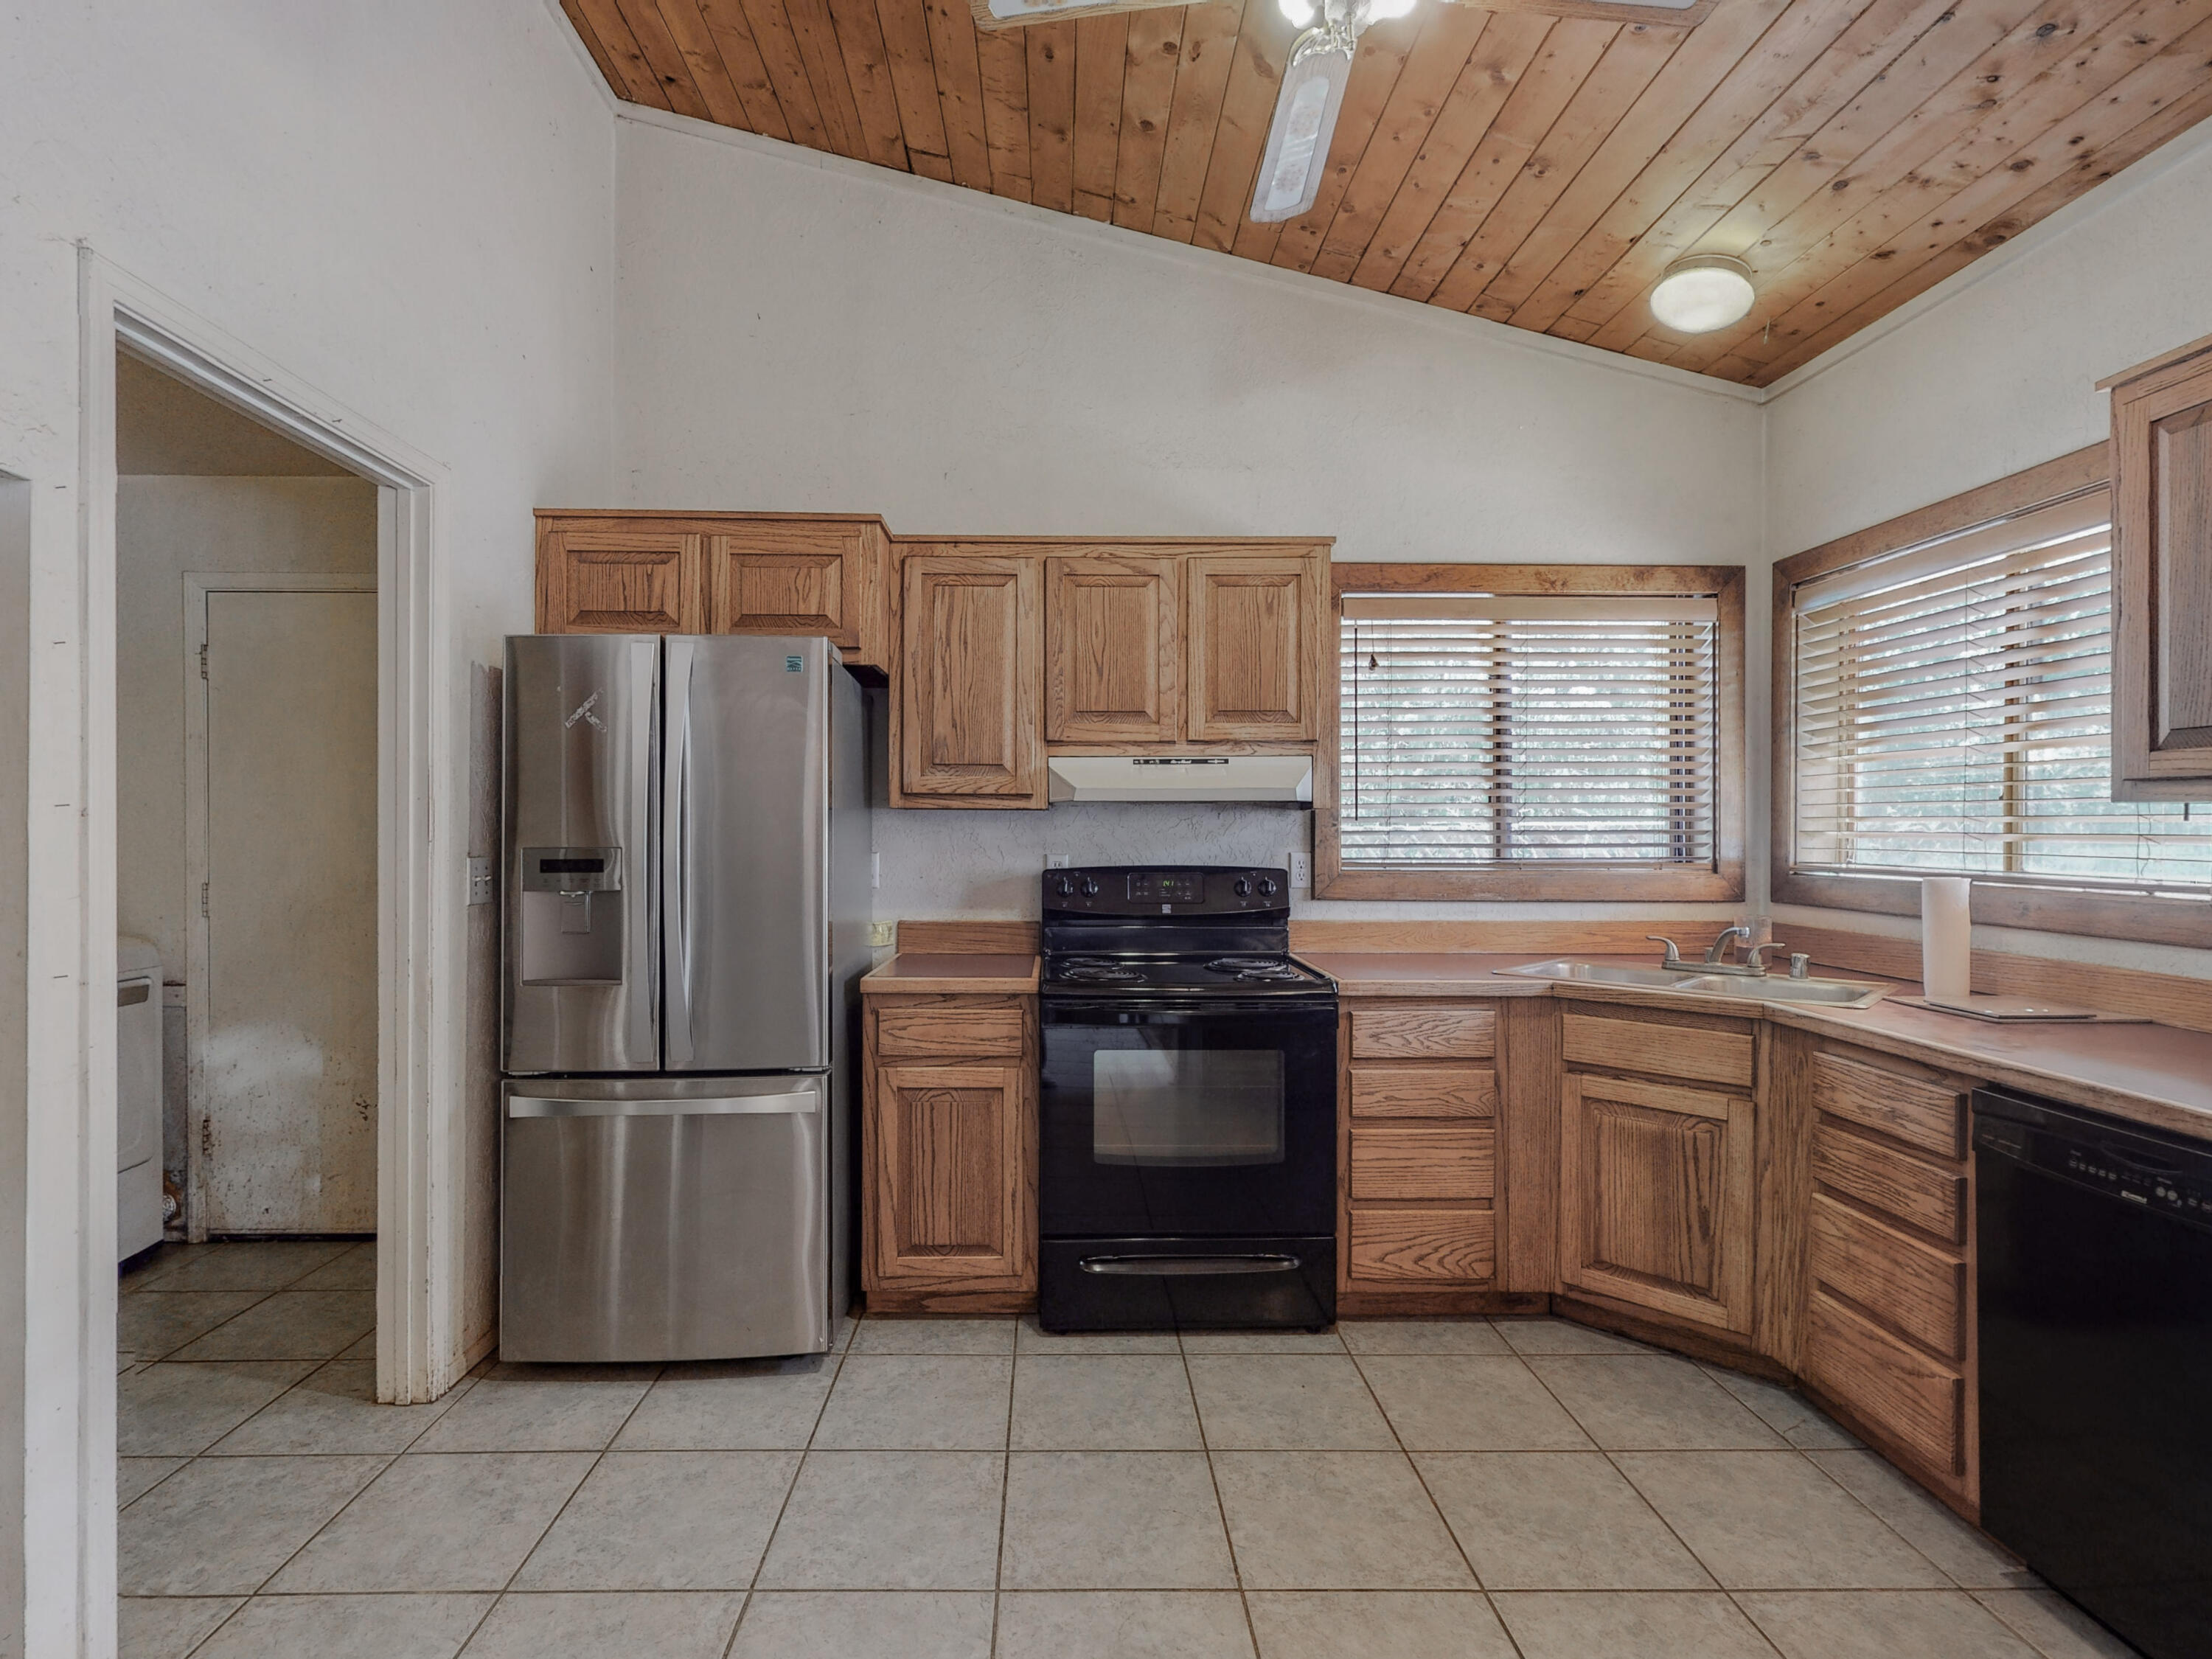 Great Split level Home on a Wooded Lot, get away from it all! This wonderful home is bermed concrete with passive solar, and with the wood burning stove it keeps toasty in the winter with low utility costs. Home needs some TLC, it's been vacant but maintained the last 2.5 years. Great Bones & Structure, beautiful hardwood floors, T&G ceilings, it needs carpet, paint, bathroom updates, cosmetics inside. Tranquillo Pines water, metal roof, appliances stay, 2 storage sheds, completely fenced and gated oversized garage 20X20 with double doors and work space. Plenty of Equity here!